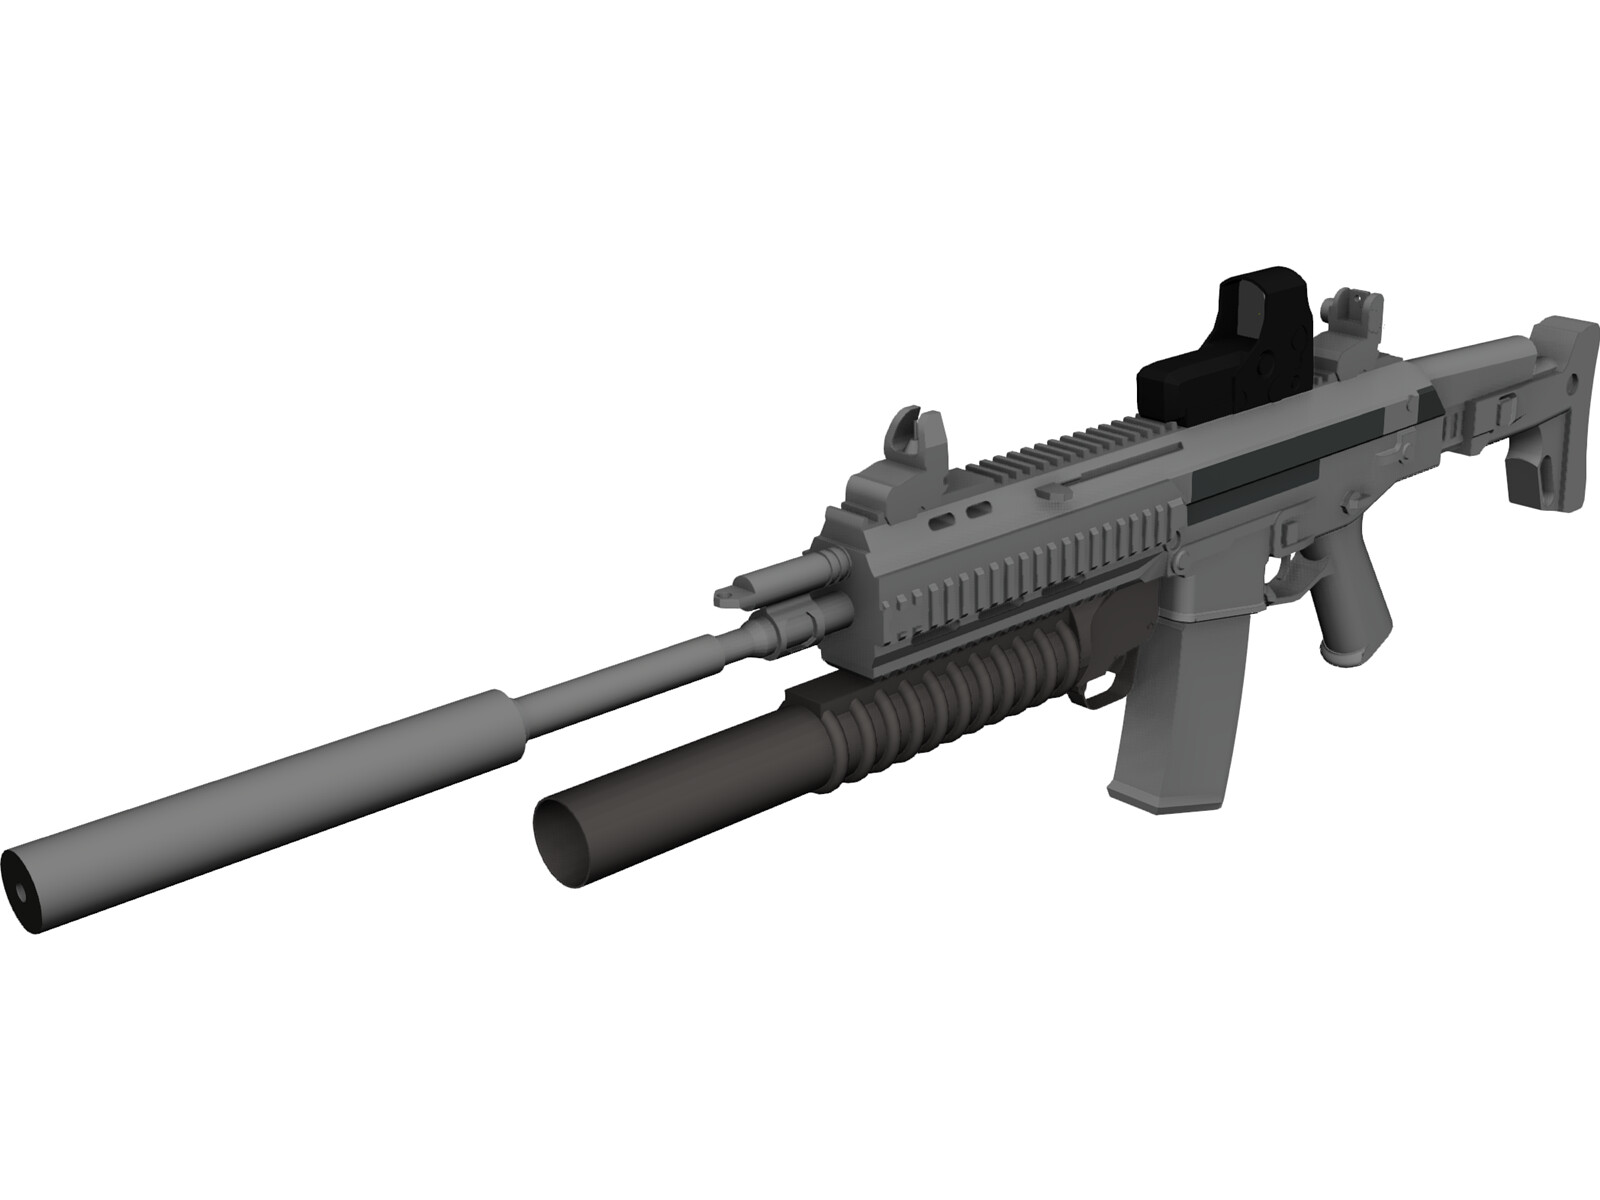 ACR SV with Granade Launcher 3D Model